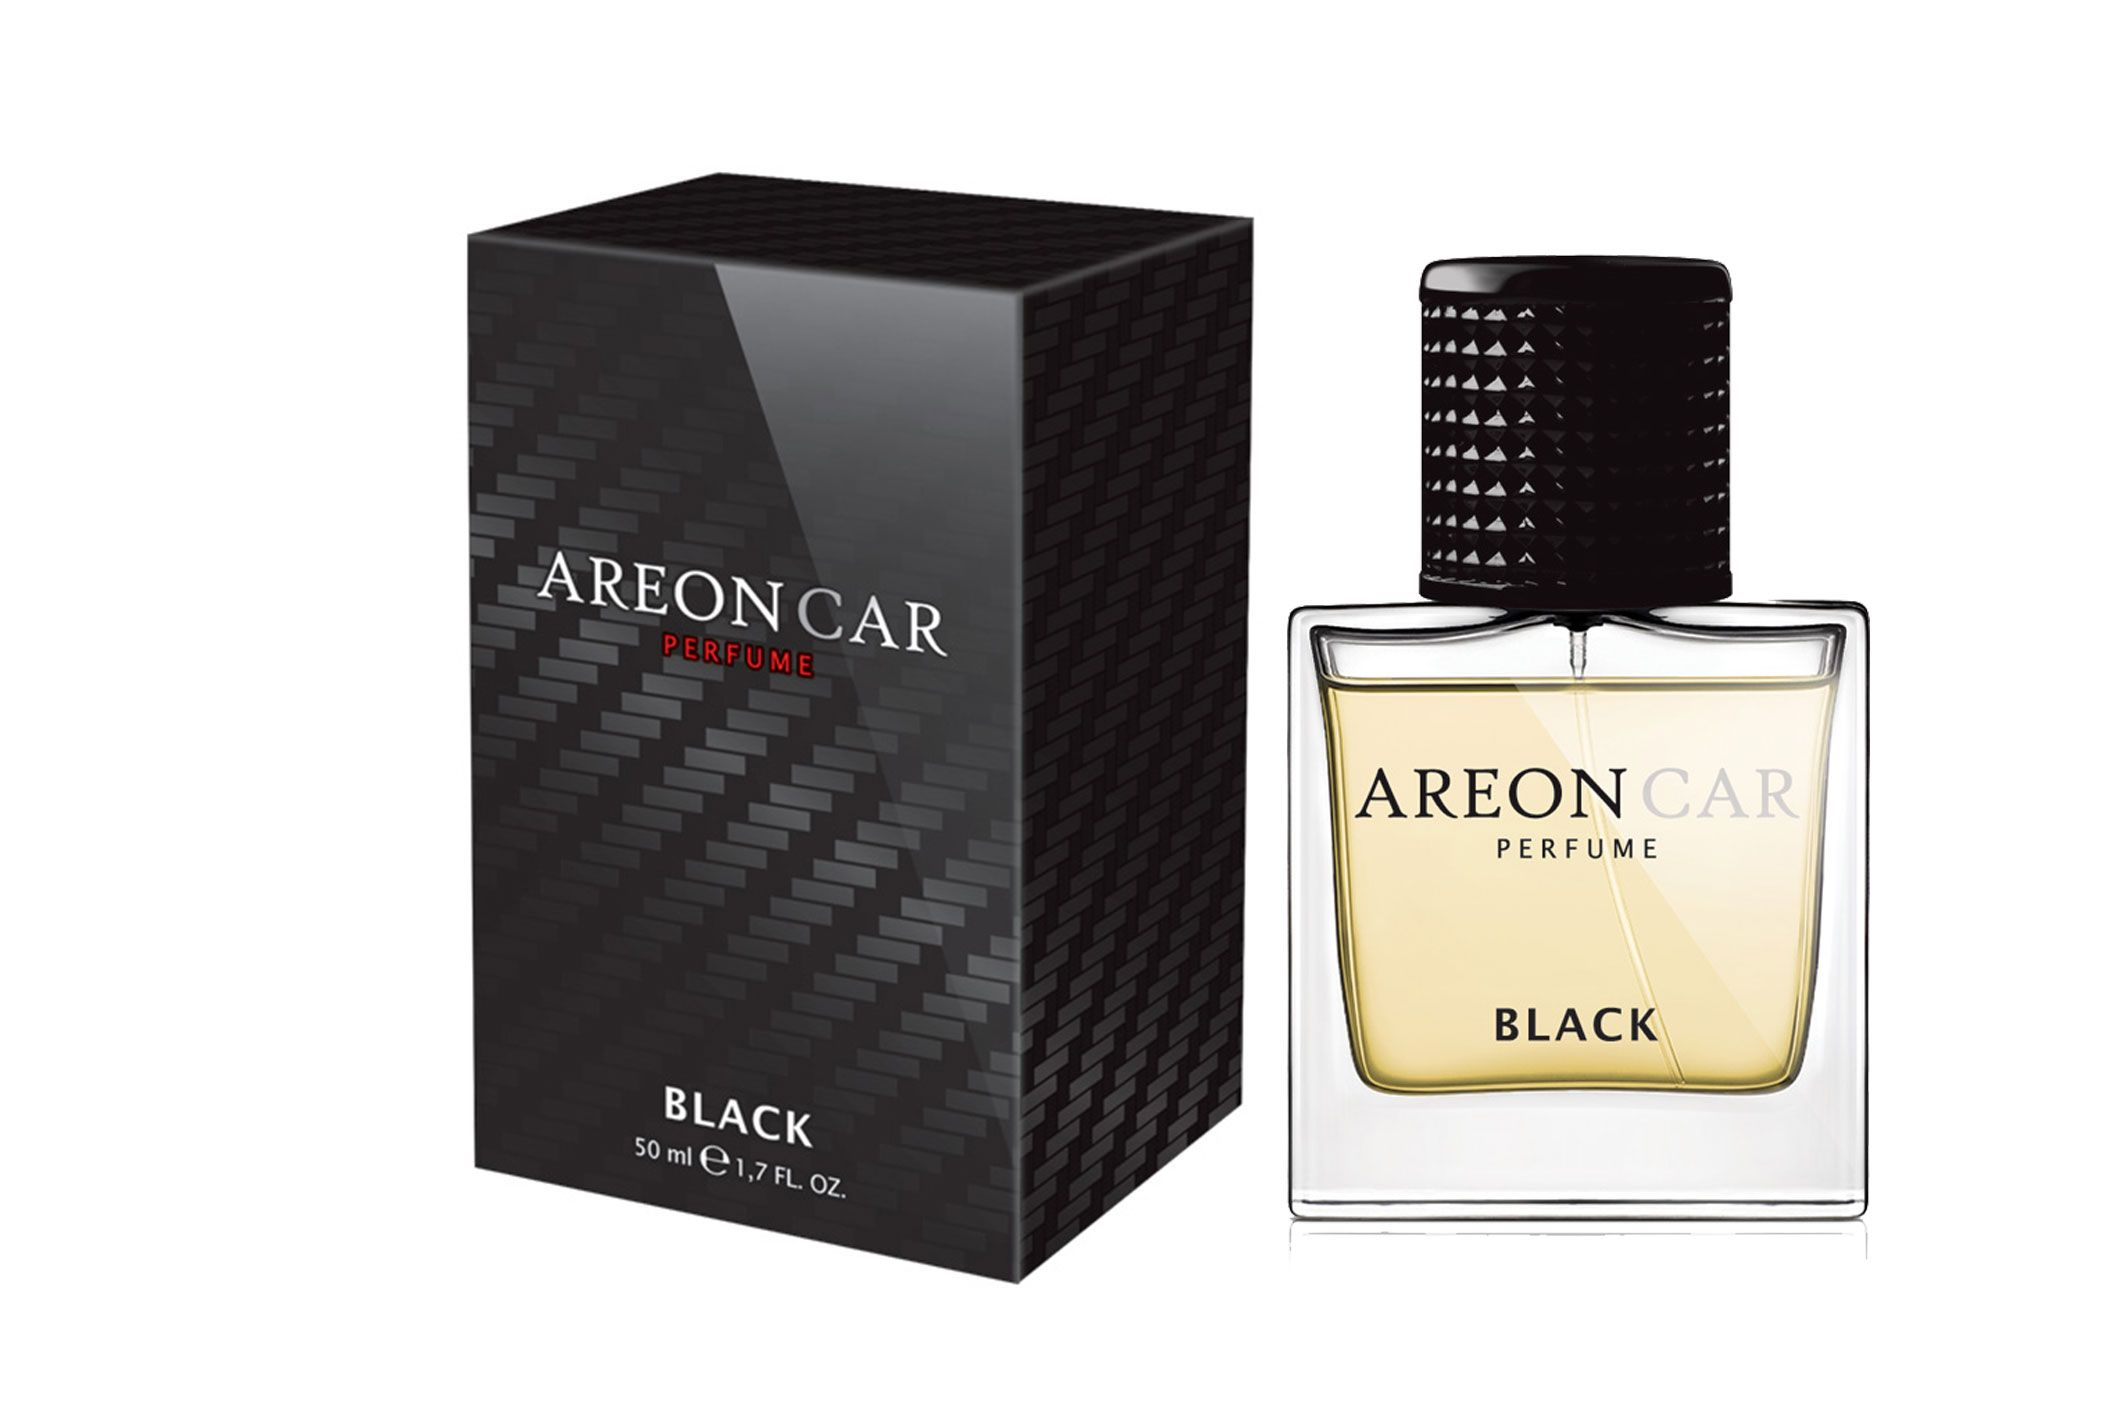 6 Parfum Original Antonio Banderas Radiant Seduction In Black Man Edt 100ml